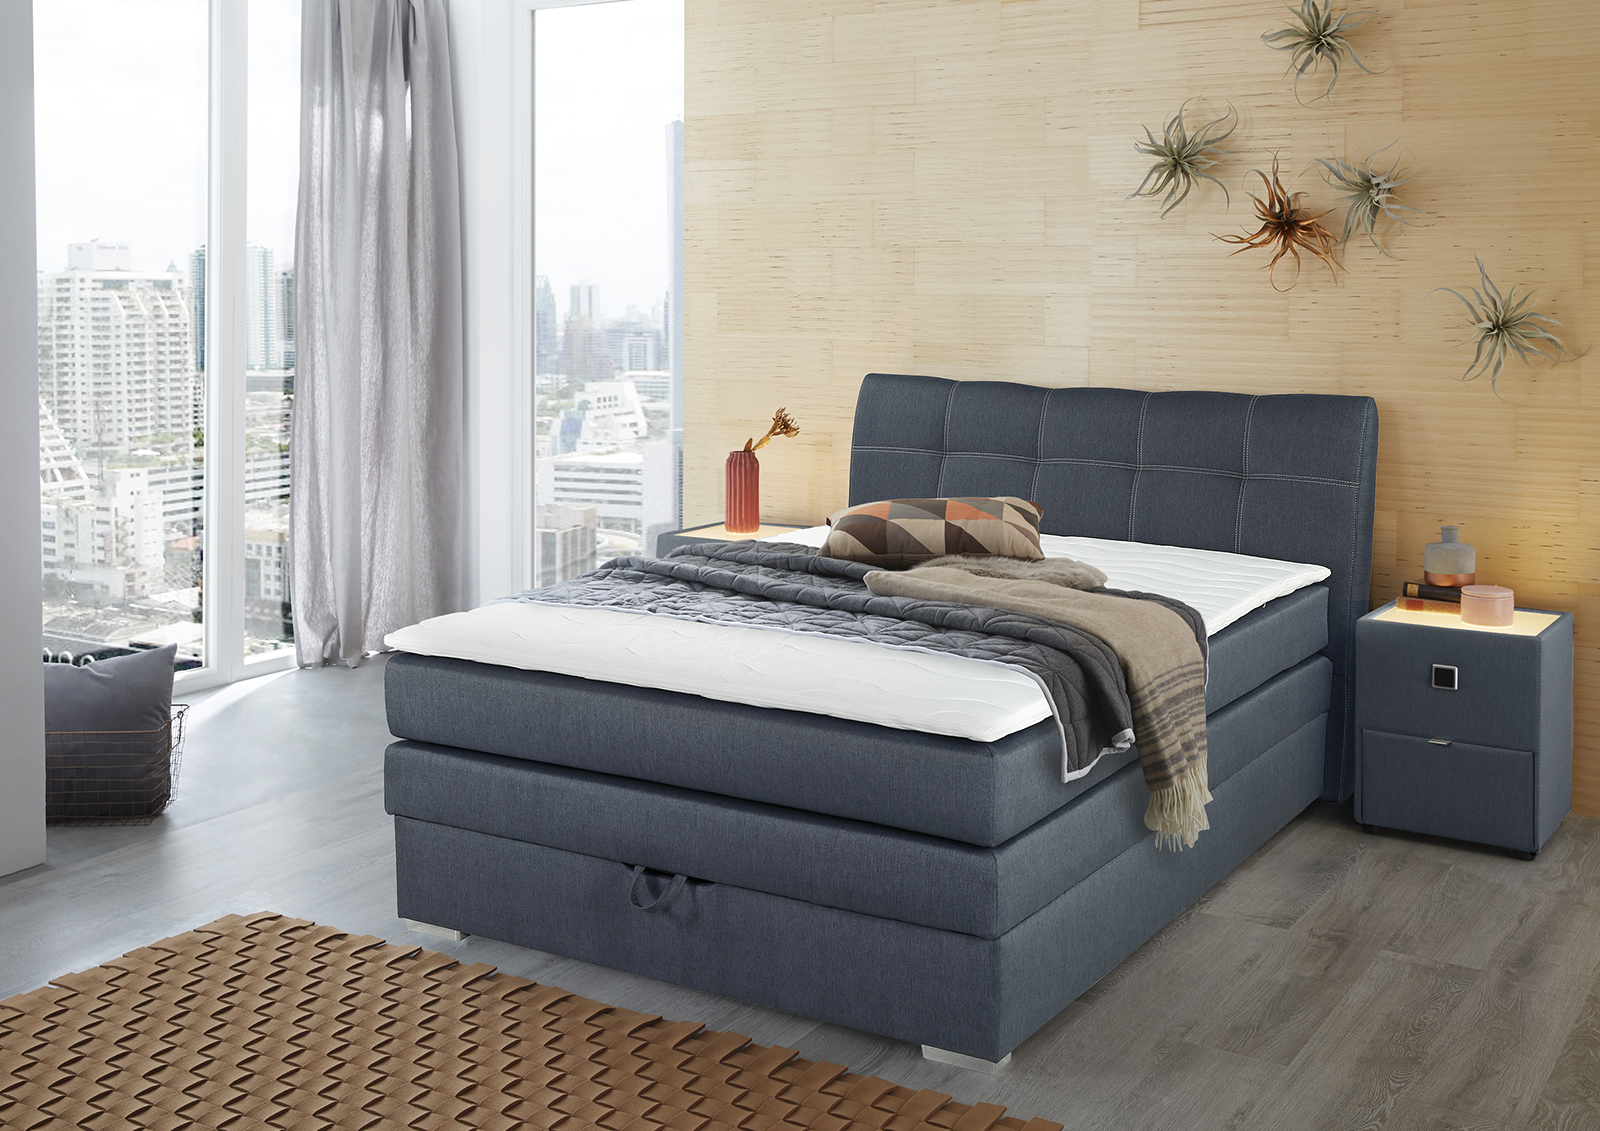 amelie boxspringbett 140x200 inkl bettkasten u topper bonell blau by ebay. Black Bedroom Furniture Sets. Home Design Ideas